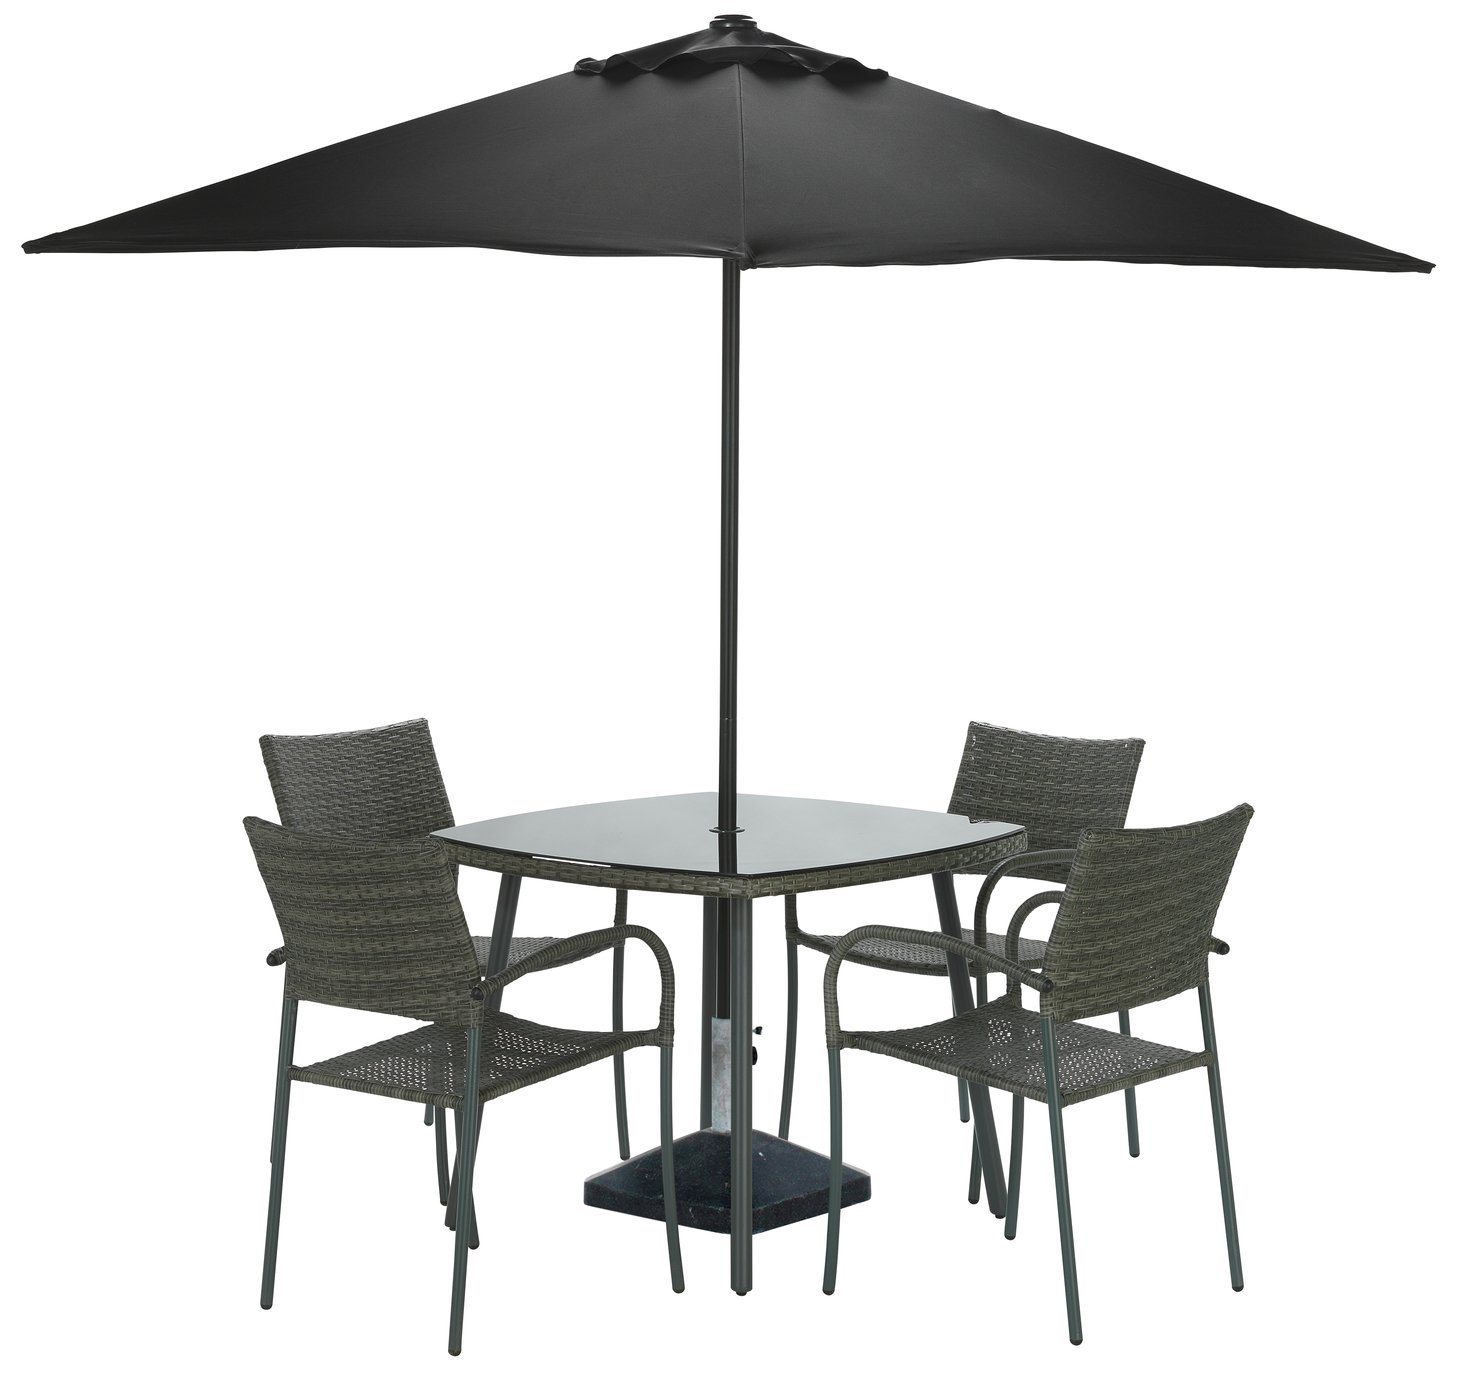 Argos Home Cusco Rattan 4 Seater Dining Set - Brown